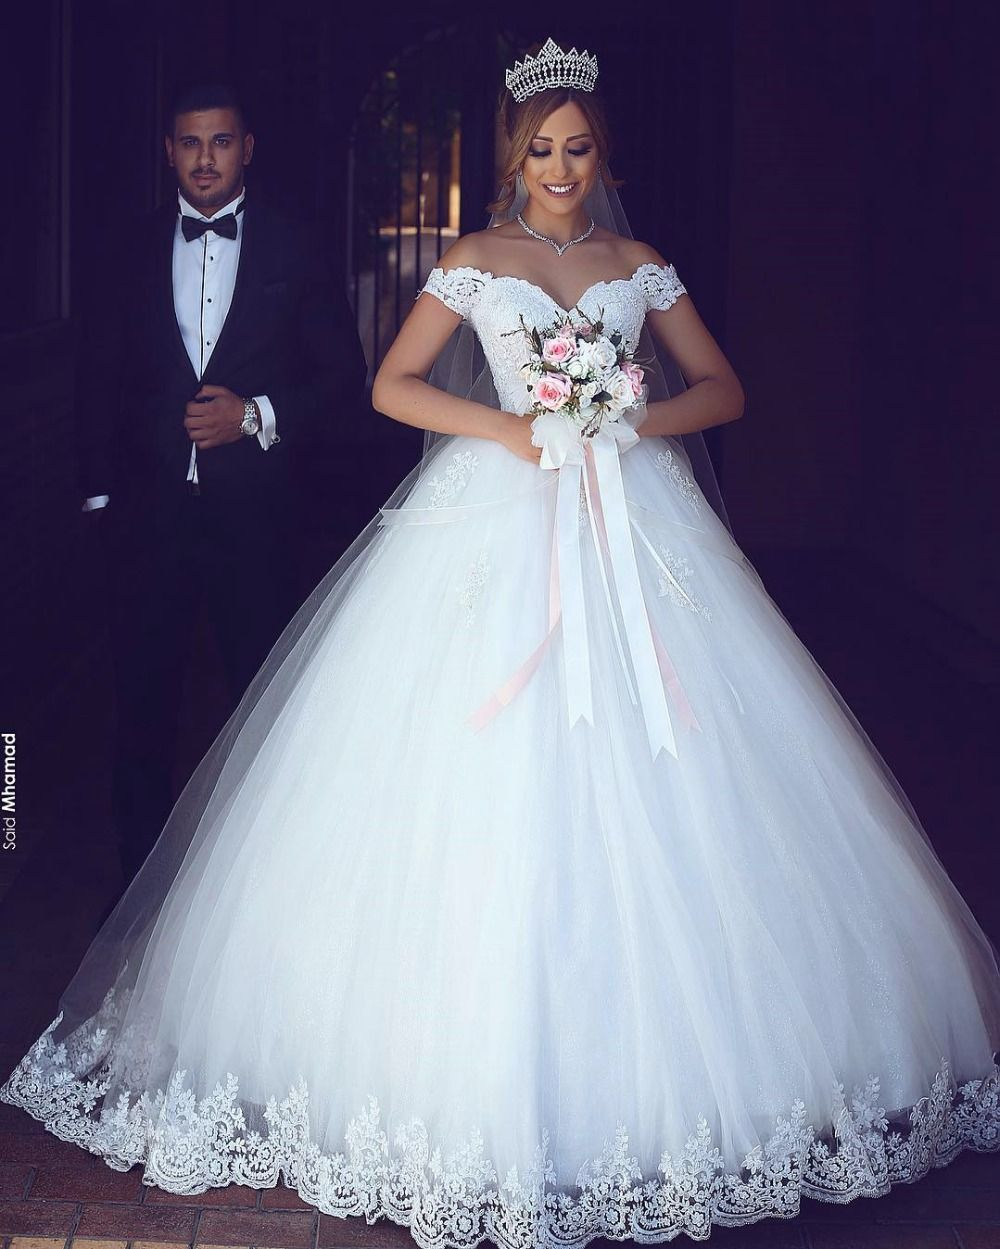 Pin on Amazing Wedding Dresses